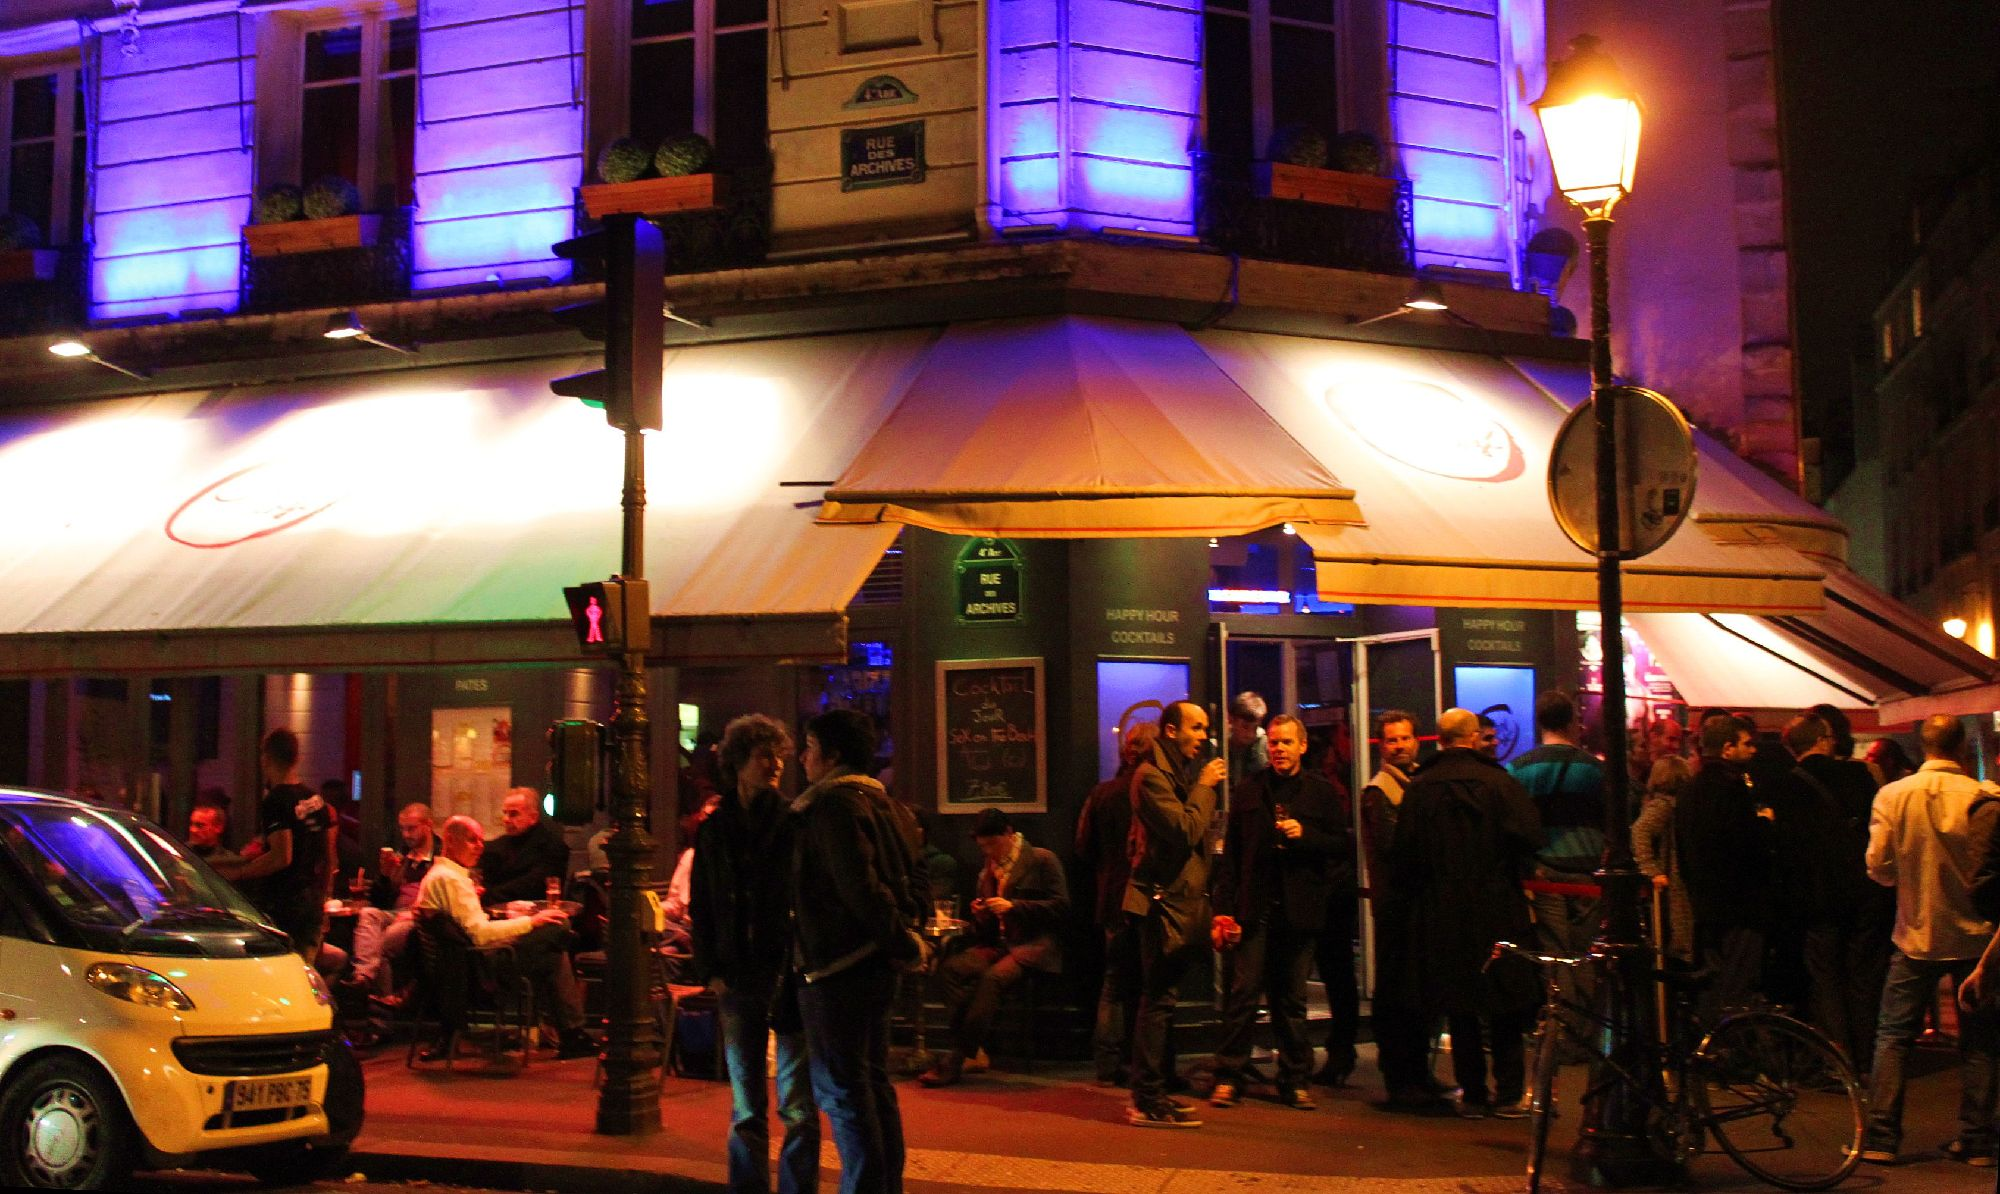 where gay clubs operate openly and LGBT